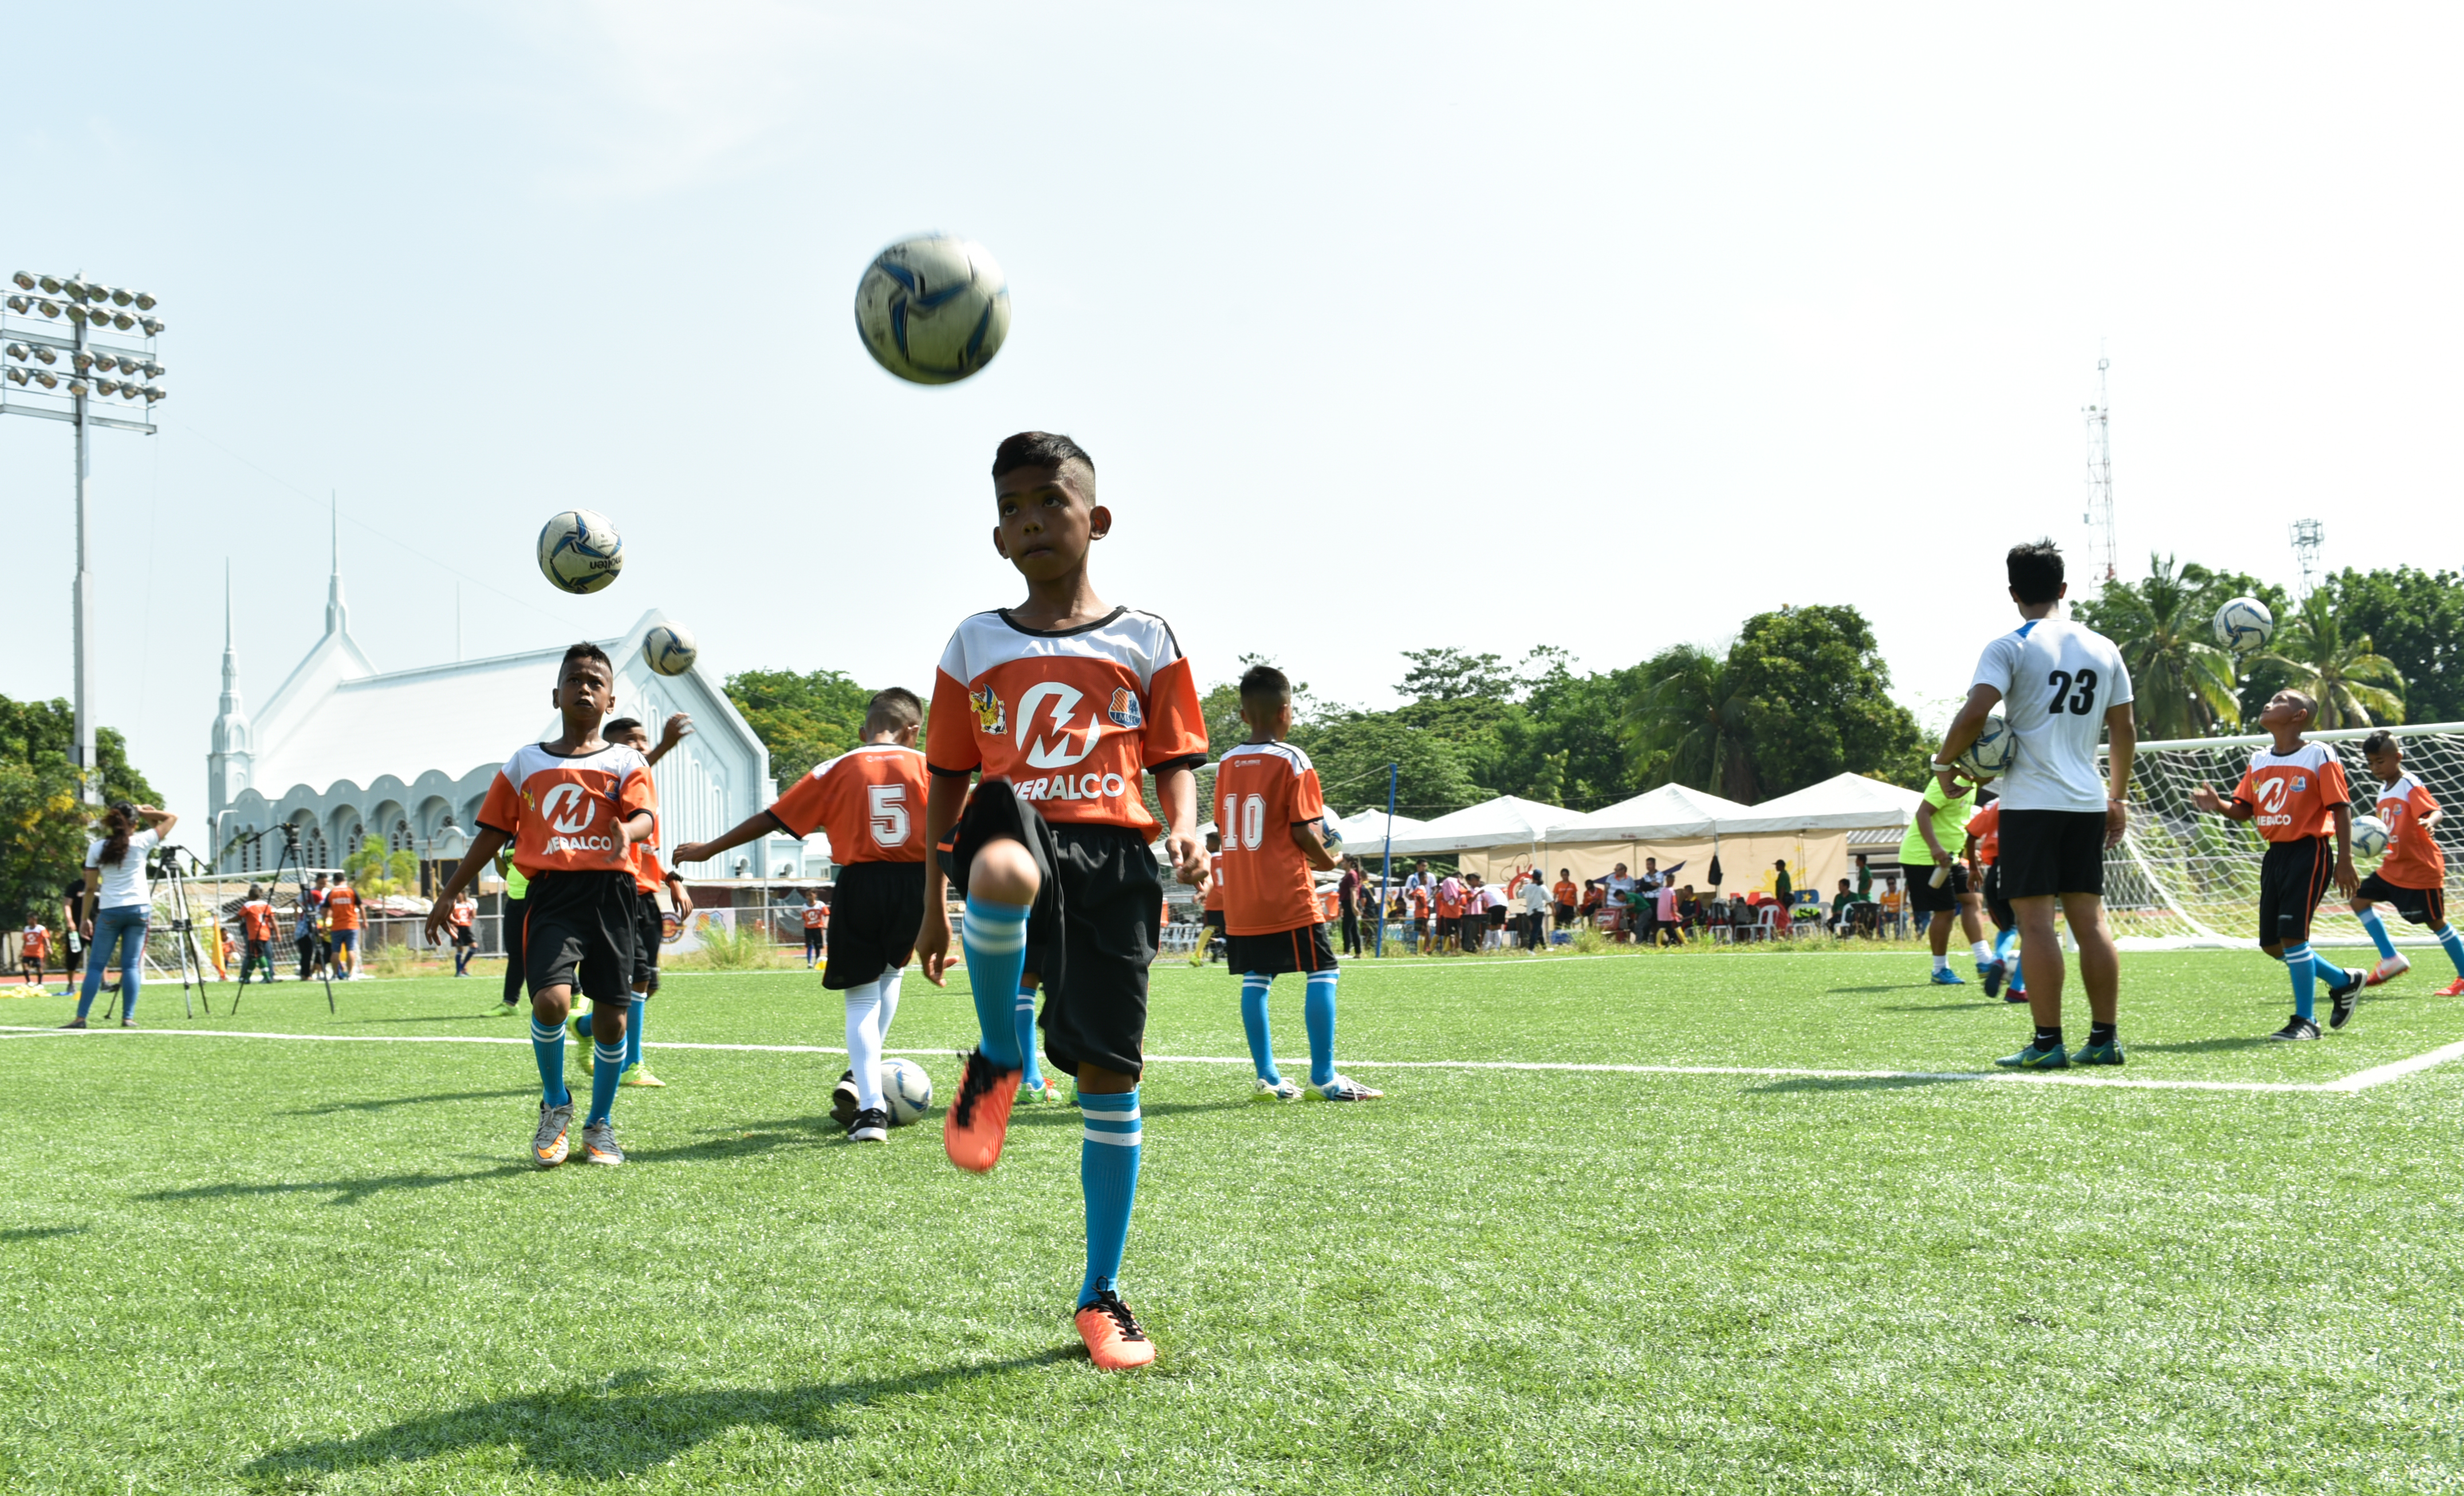 One Meralco Foundation and the Philippine Marine Corps promote peace through sports with Football for Peace.